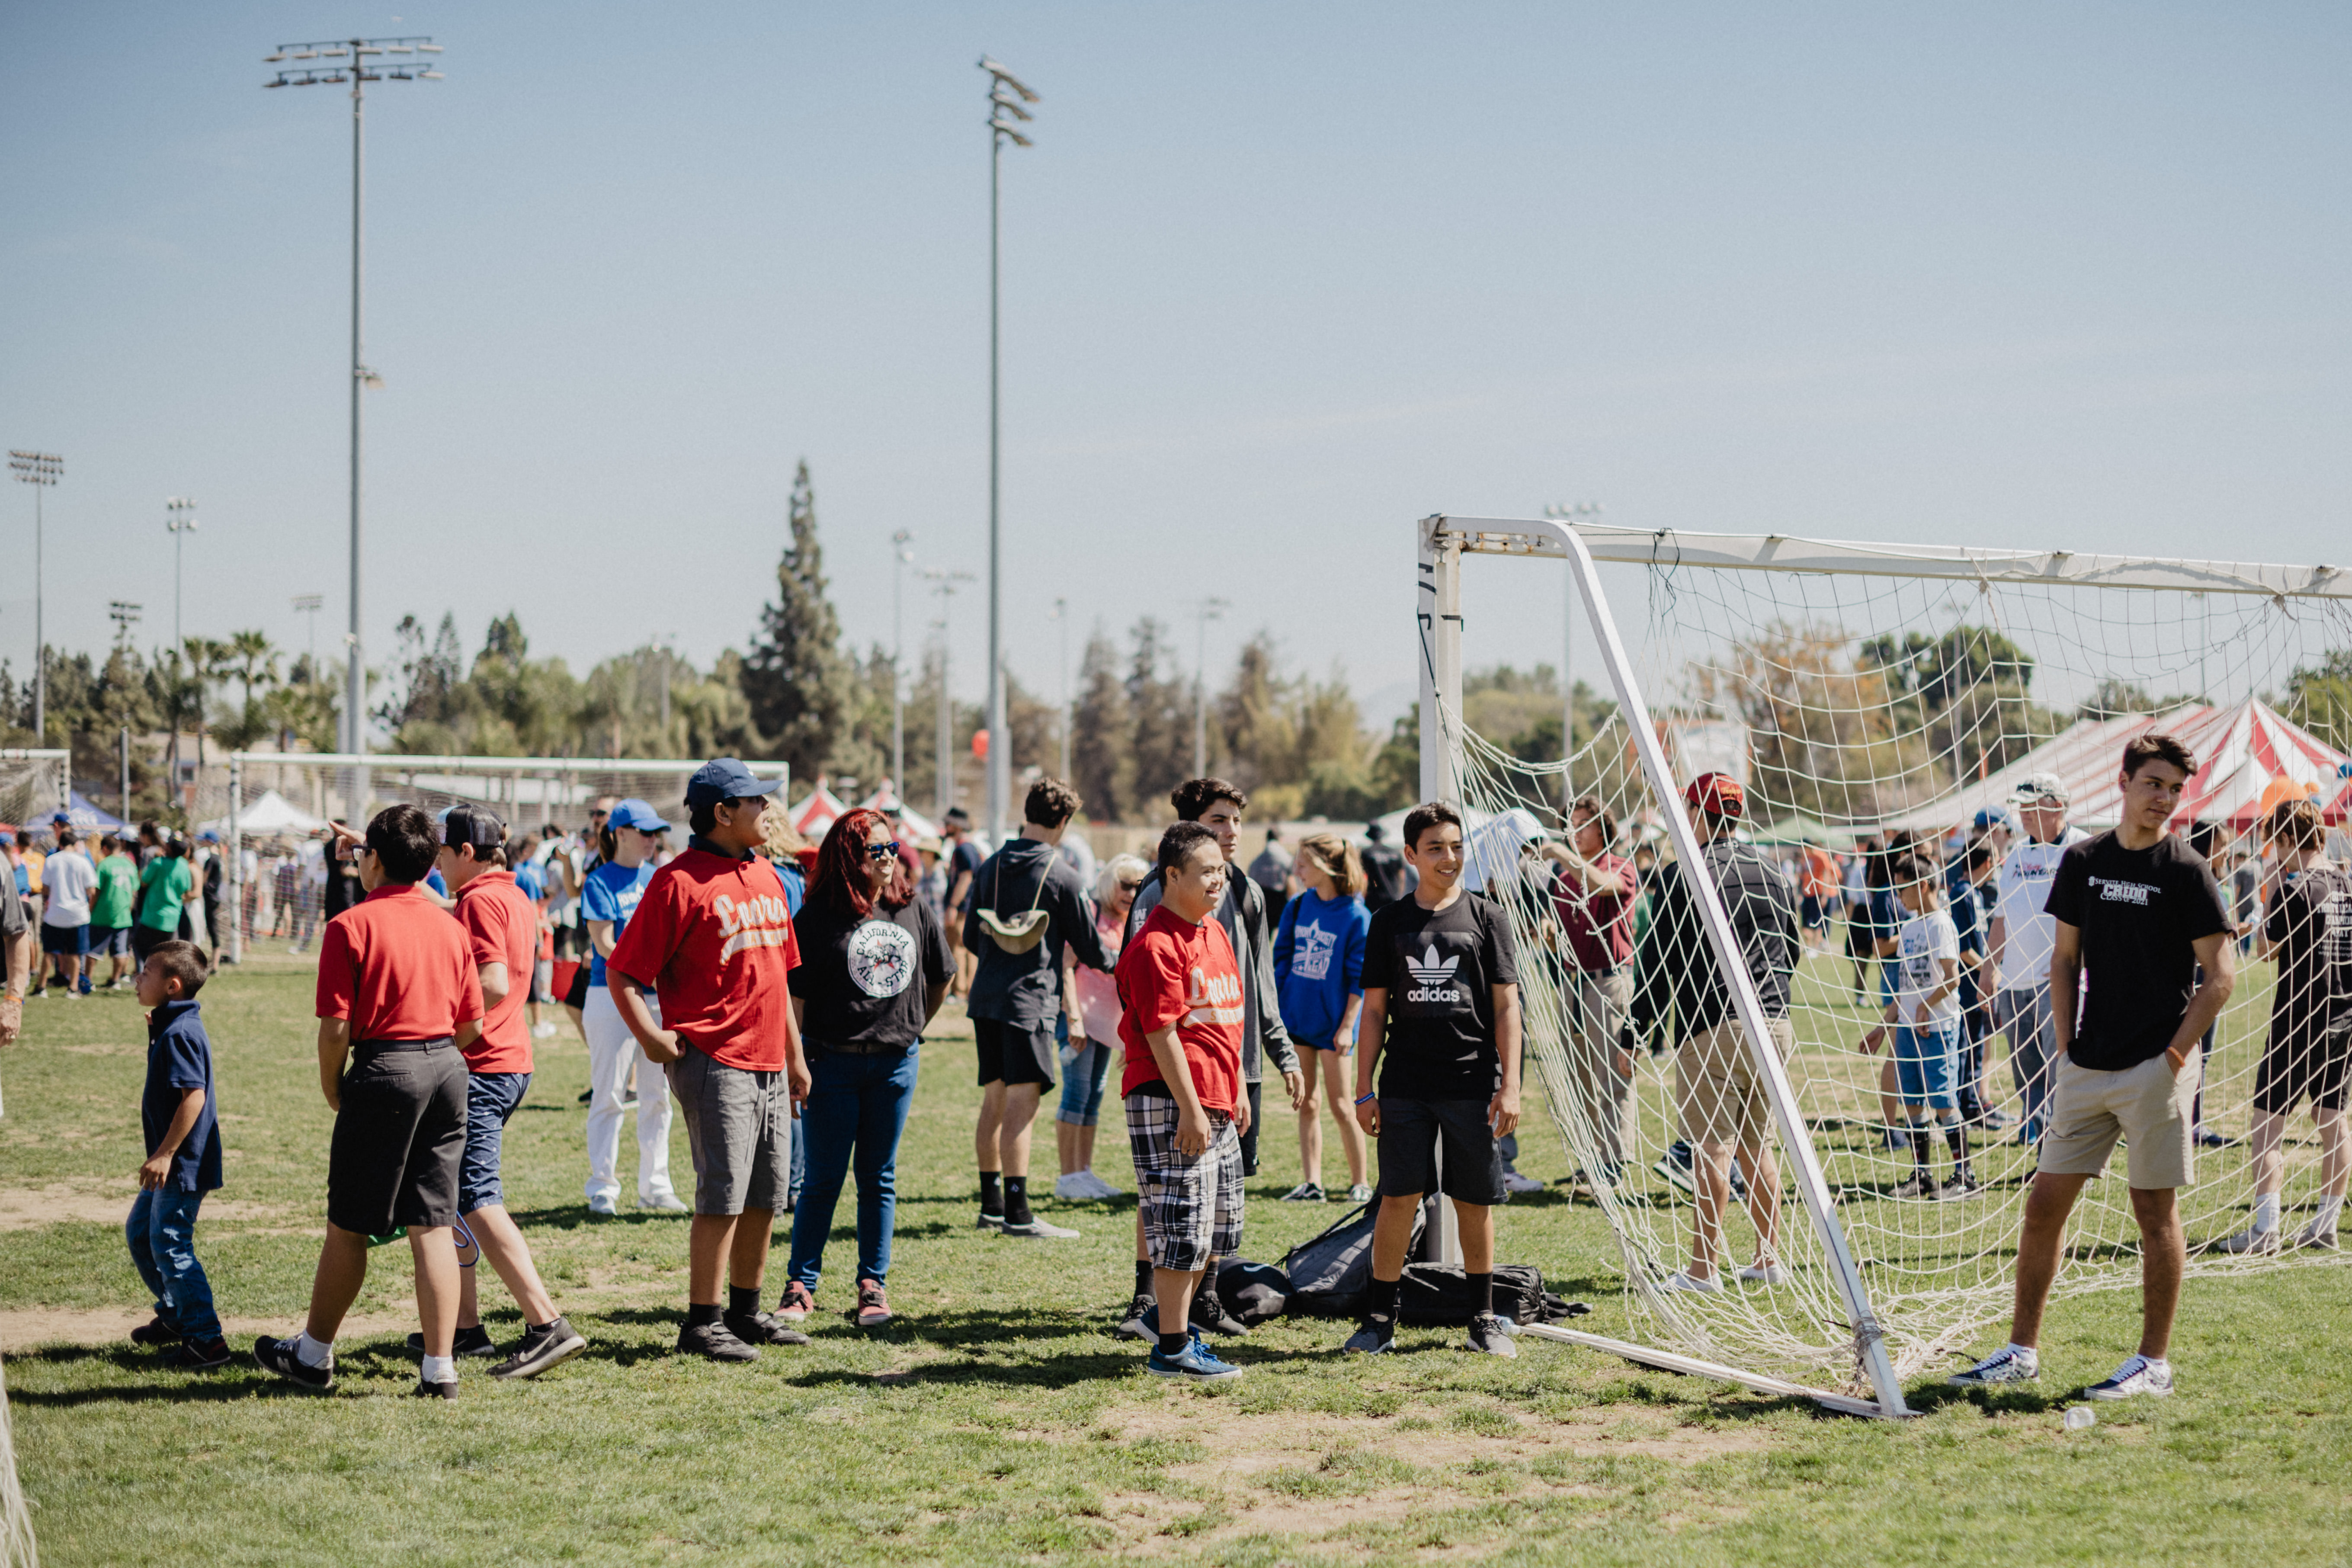 33rd Annual Faley Special Games | OC Goodwill on